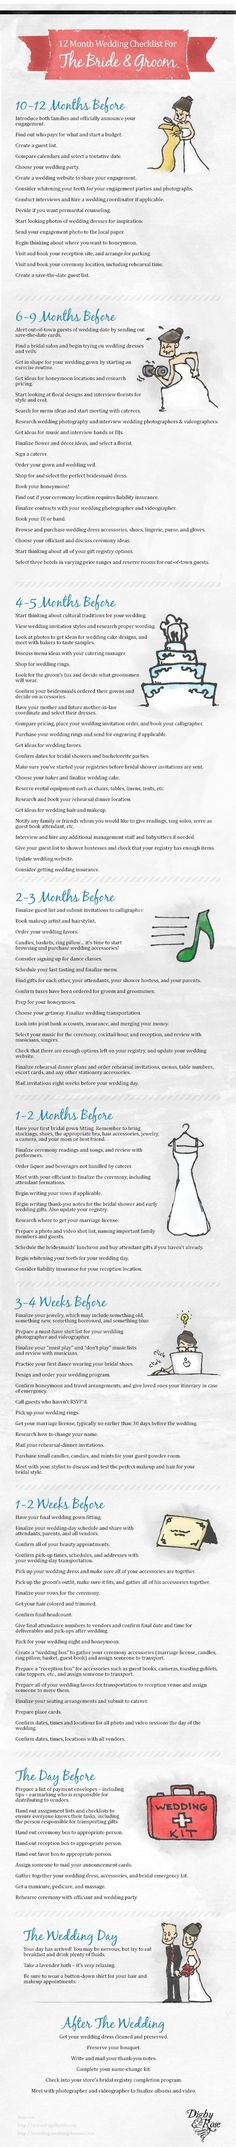 Wedding Checklist I cant believe I'm down to 5 months! 12 Month Wedding Checklist For The Bride and Groom - Source: Wedding Planning Checklist by Digby Wedding To Do List, Do It Yourself Wedding, Wedding Tips, Wedding Events, Our Wedding, Dream Wedding, Trendy Wedding, Wedding Timeline, Fall Wedding